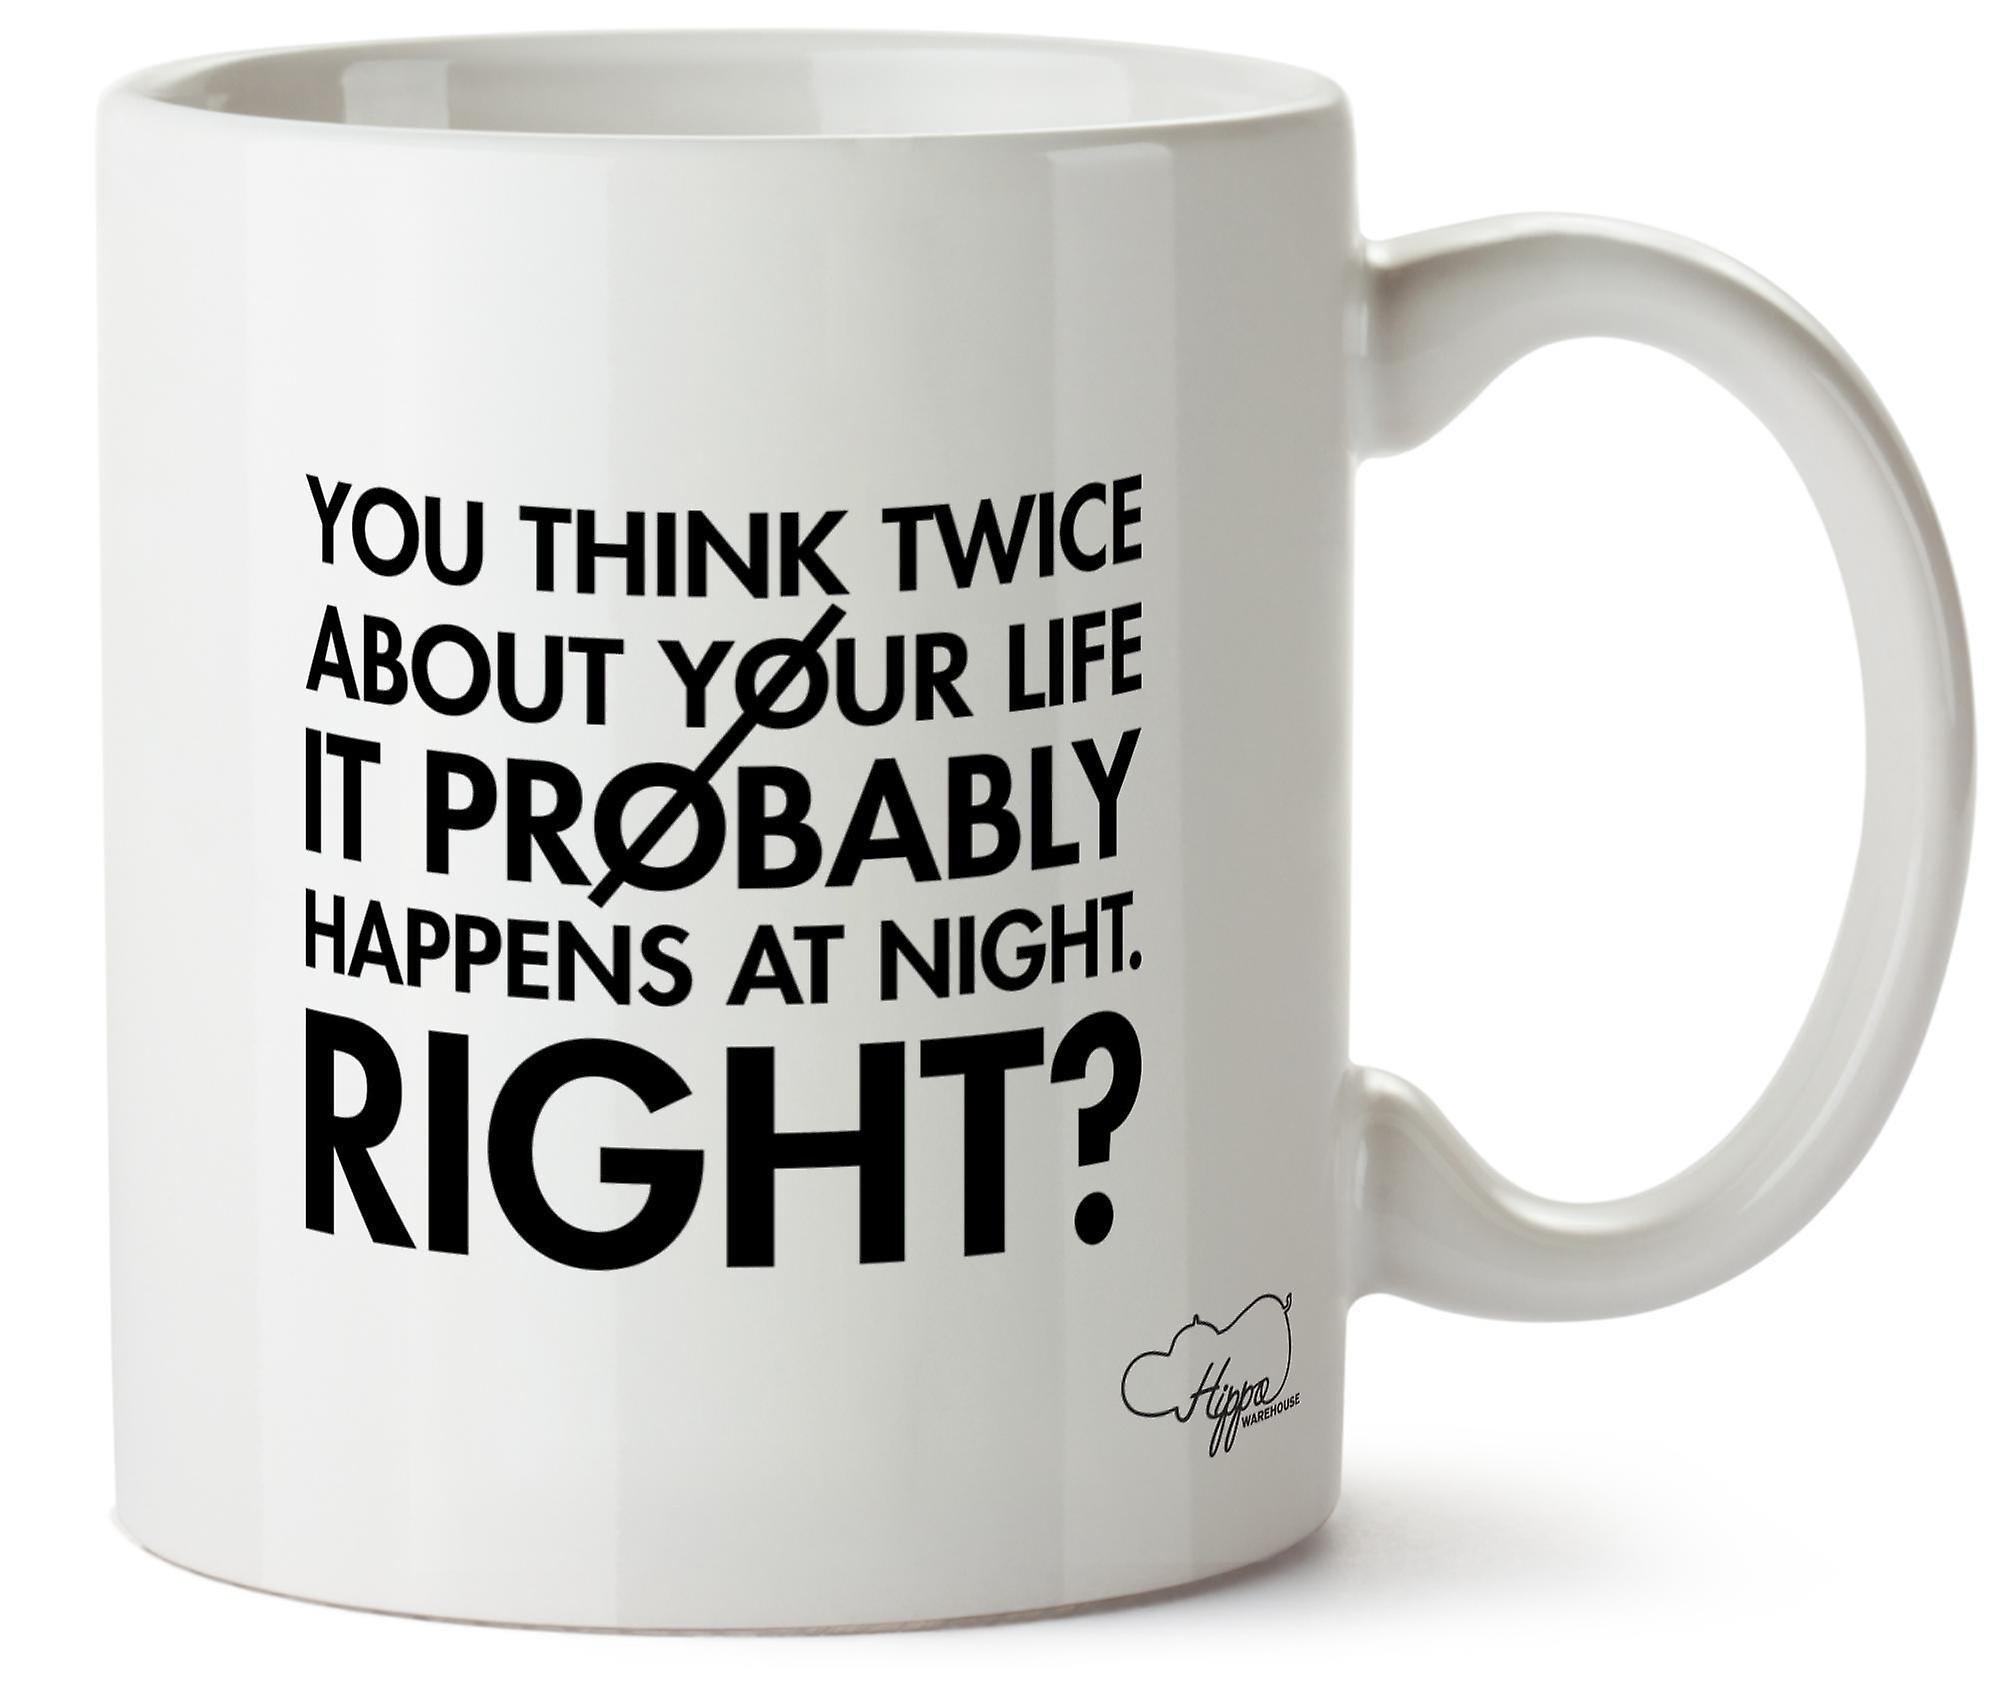 Hippowarehouse You Think Twice About Your Life It Probably Happens At Night. Right? Printed Mug Cup Ceramic 10oz